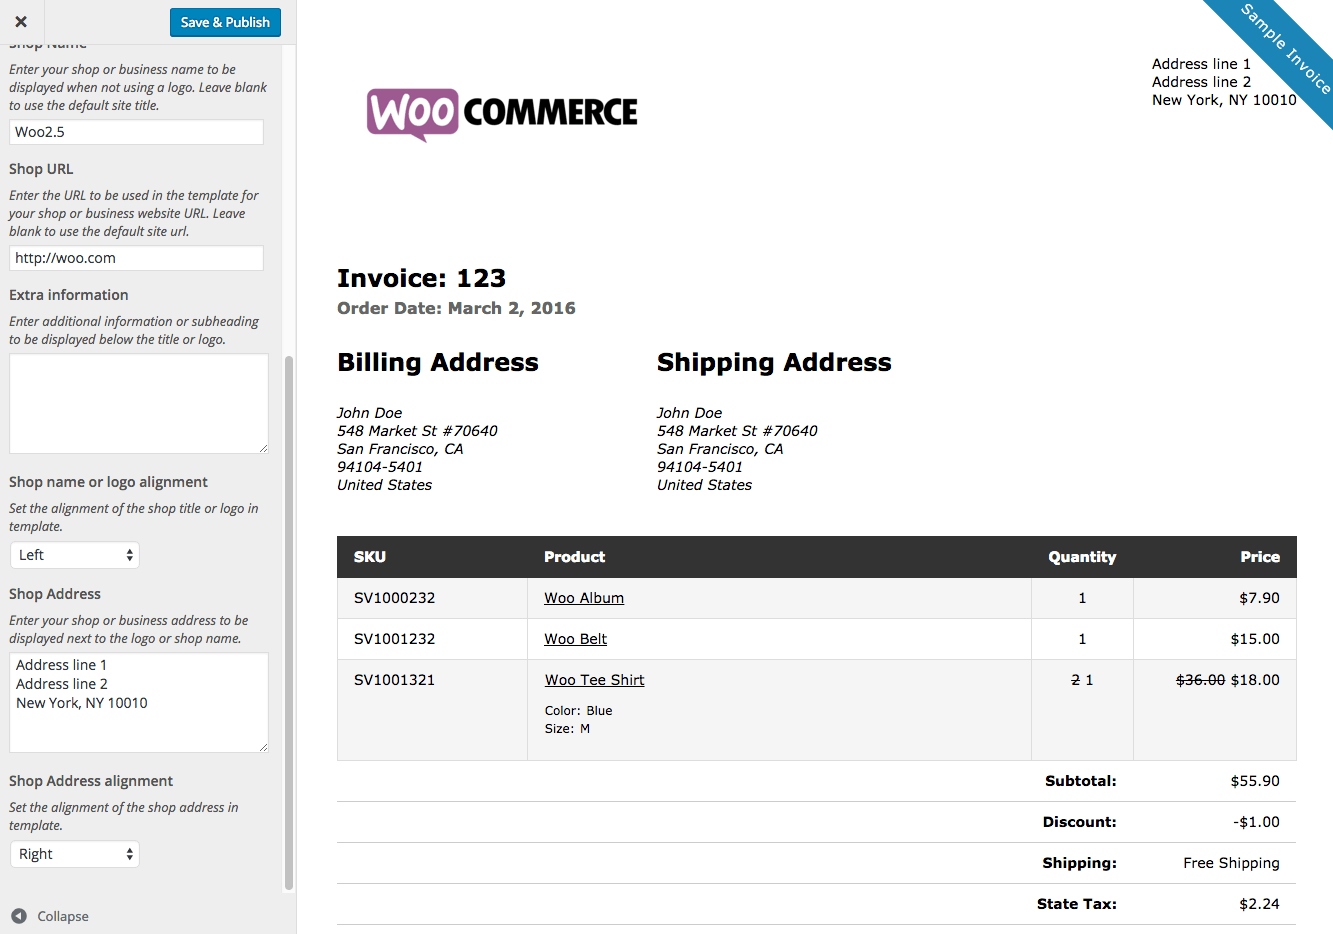 Pxworkoutfreeus  Pleasing Woocommerce Print Invoices Amp Packing Lists  Woocommerce Docs With Handsome Woocommerce Print Invoices  Packing Lists Customizer With Amusing Honda Accord Invoice Price  Also Invoice Template Free Excel In Addition Car Dealer Invoice Price List And Auto Body Invoice Template As Well As Invoice Printing Software Additionally Automated Invoicing From Docswoocommercecom With Pxworkoutfreeus  Handsome Woocommerce Print Invoices Amp Packing Lists  Woocommerce Docs With Amusing Woocommerce Print Invoices  Packing Lists Customizer And Pleasing Honda Accord Invoice Price  Also Invoice Template Free Excel In Addition Car Dealer Invoice Price List From Docswoocommercecom